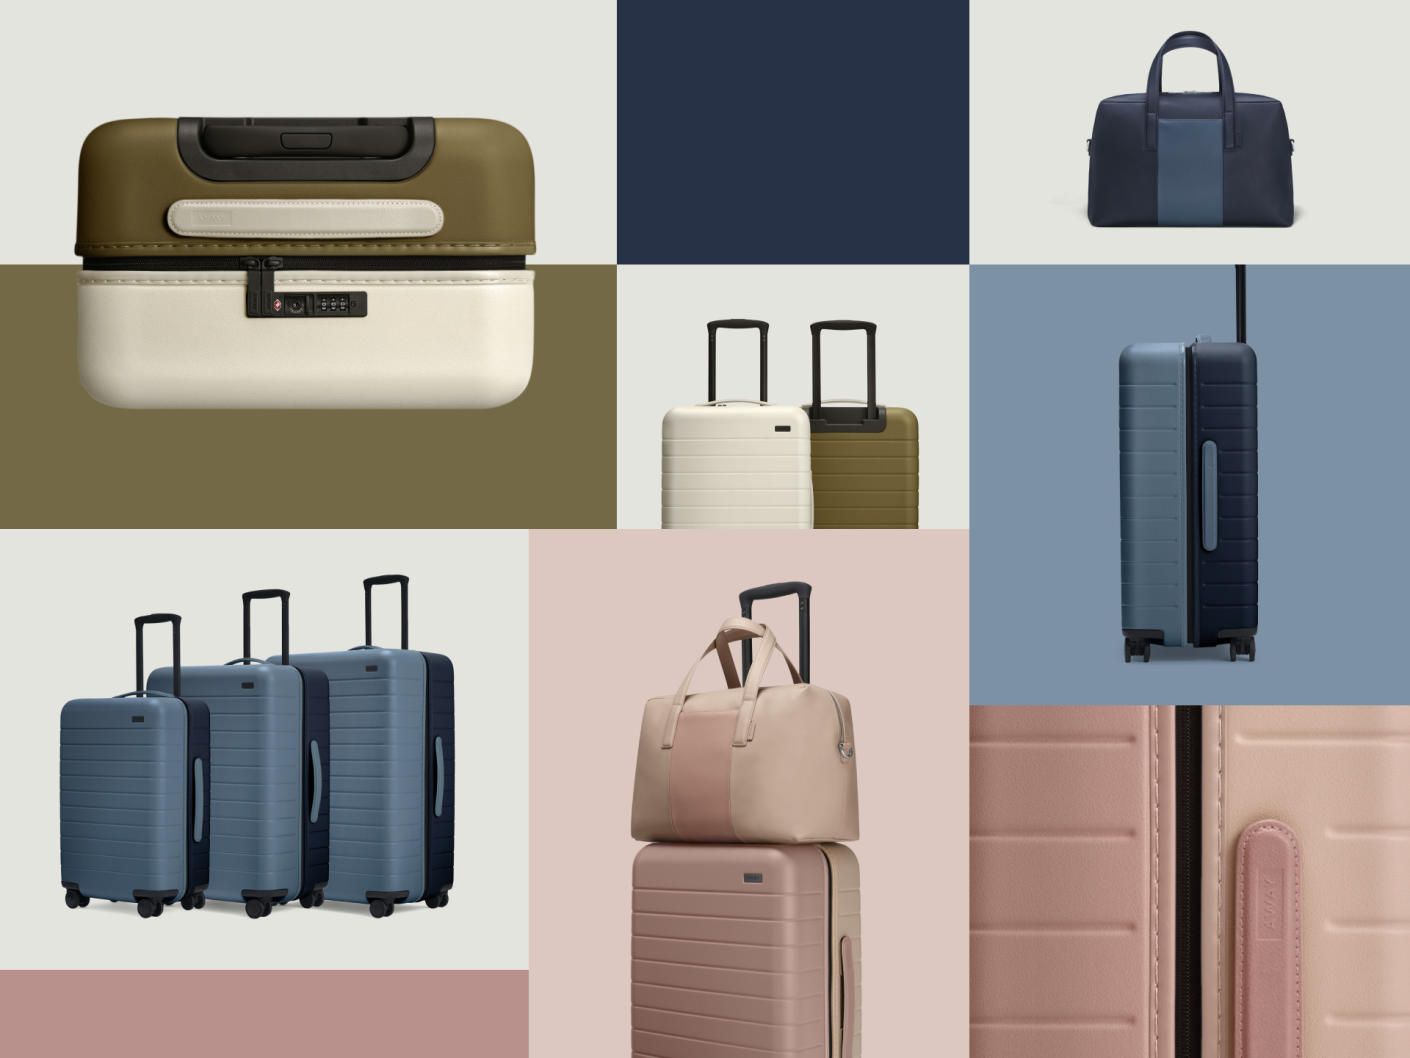 Two tone Away luggage collection in pastel shades of blue, olive and pink displayed in image blocks.